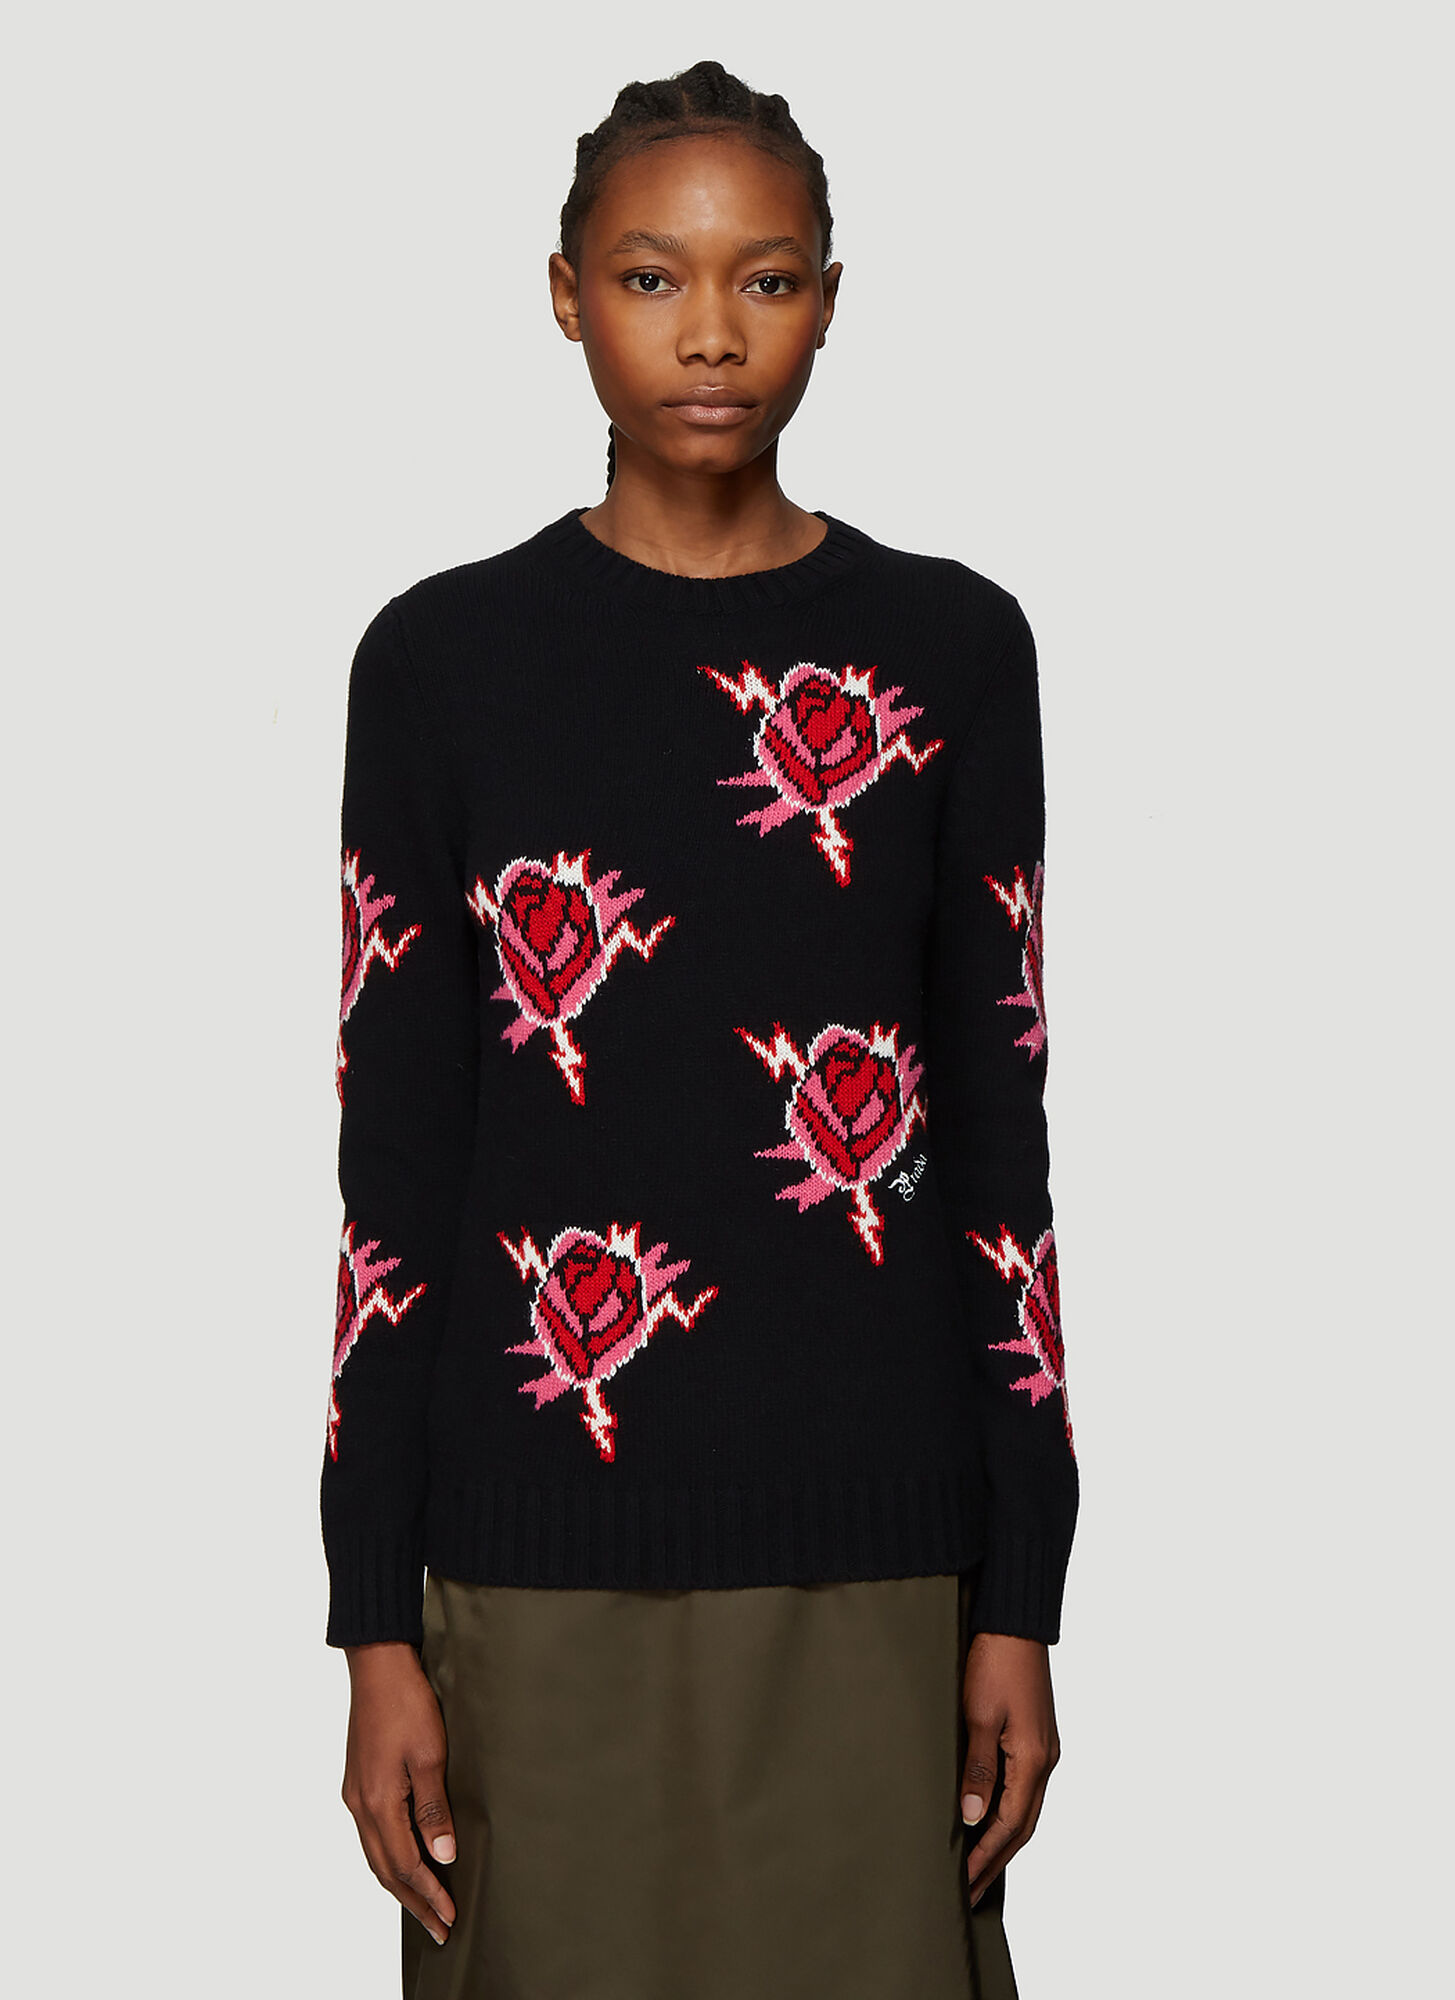 Prada Rose Motif Sweater in Black